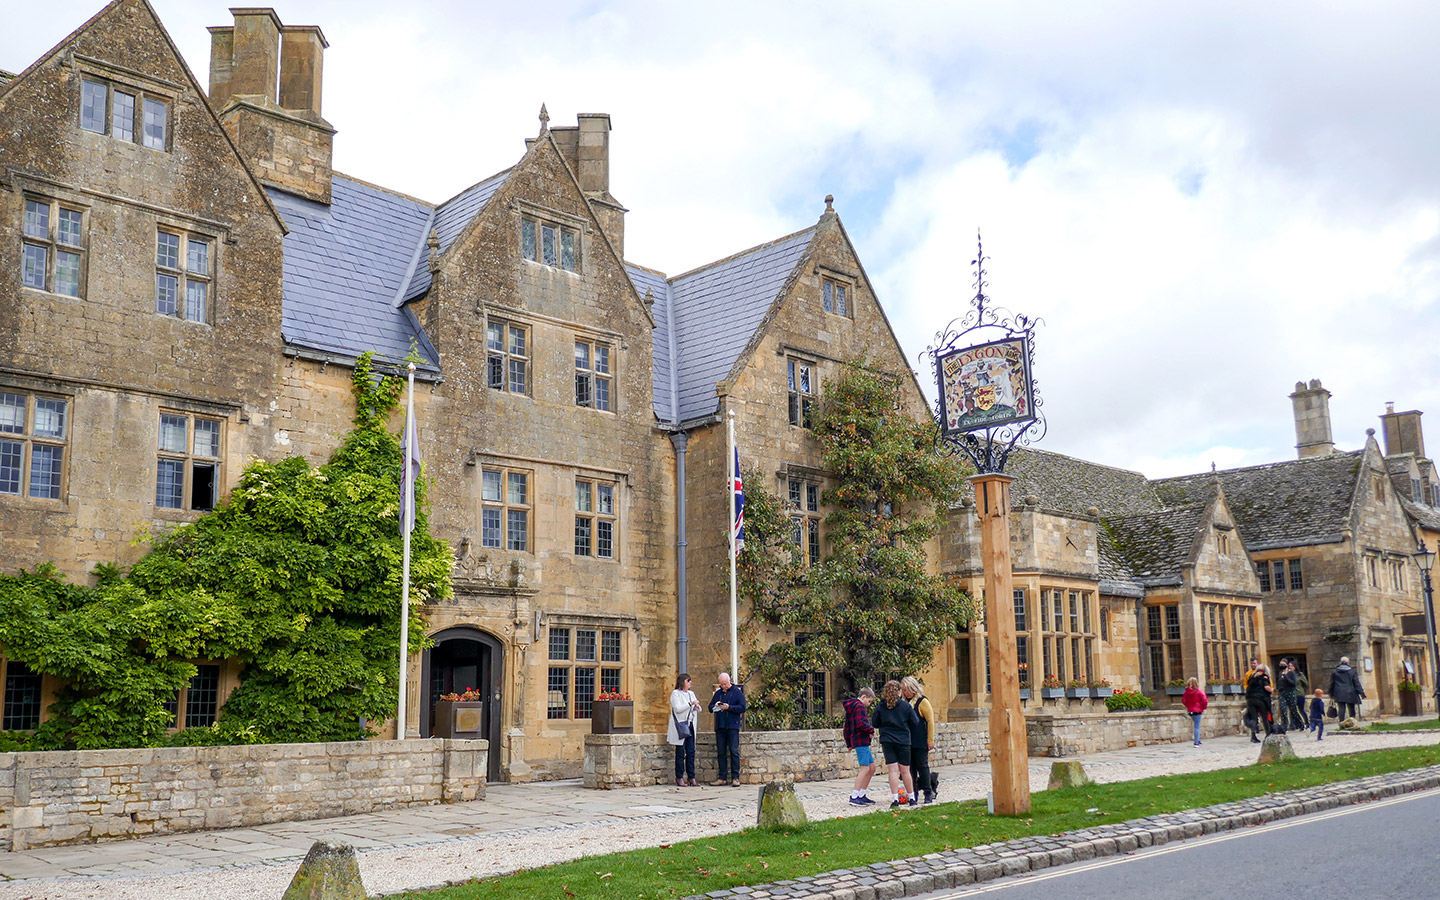 The The Lygon Arms hotel in Broadway, Cotswolds